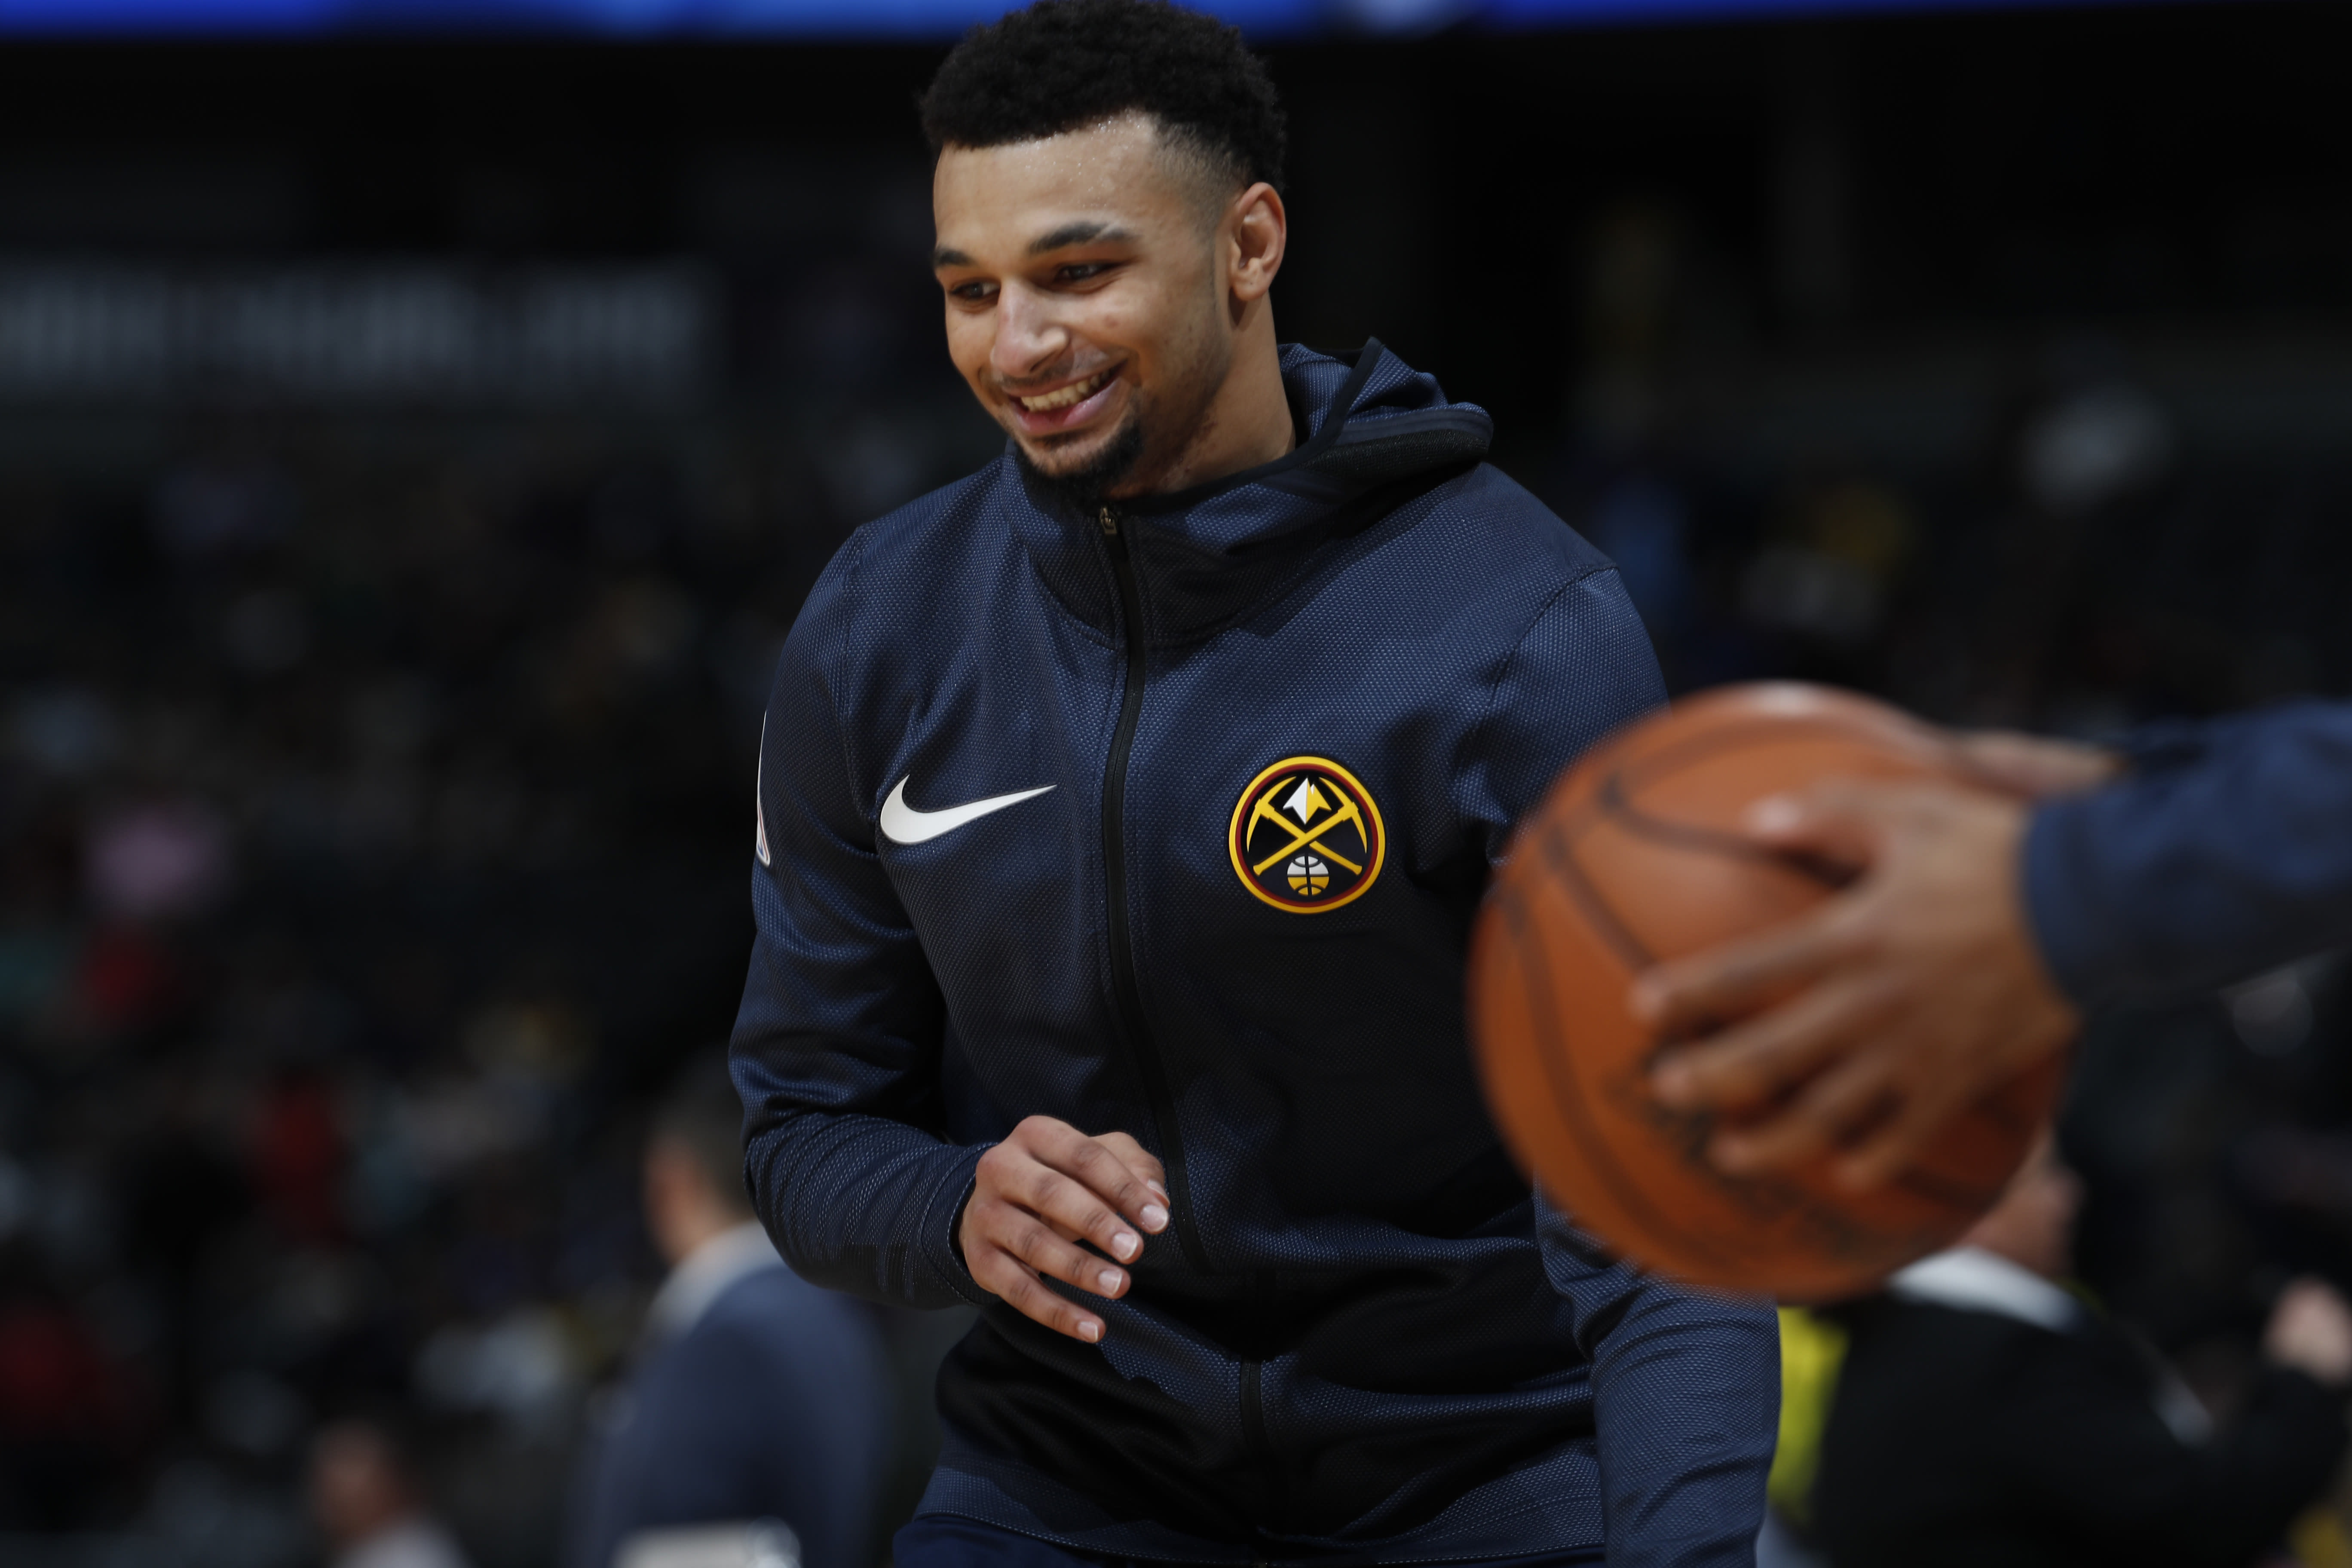 0cd70557f Jamal Murray hits half-court shots with ease in warmups